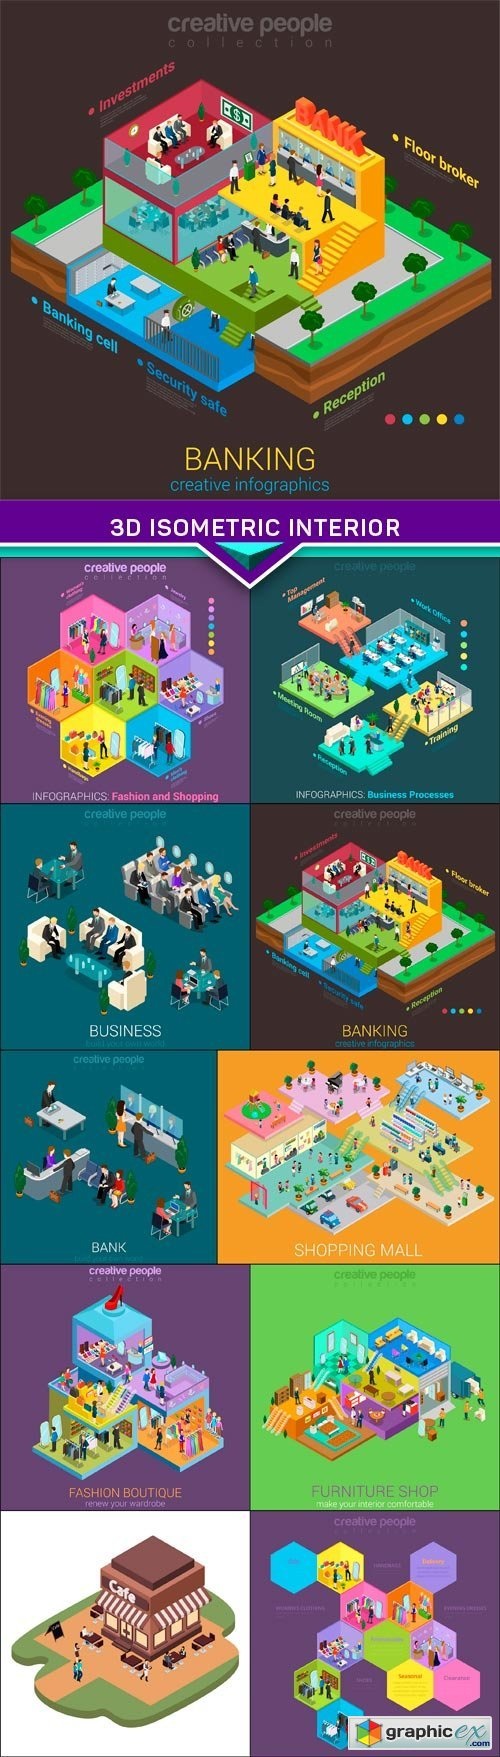 3d isometric interior mall business concept vector 10x eps stock 3d isometric interior mall business concept vector 10x eps stock images gumiabroncs Choice Image